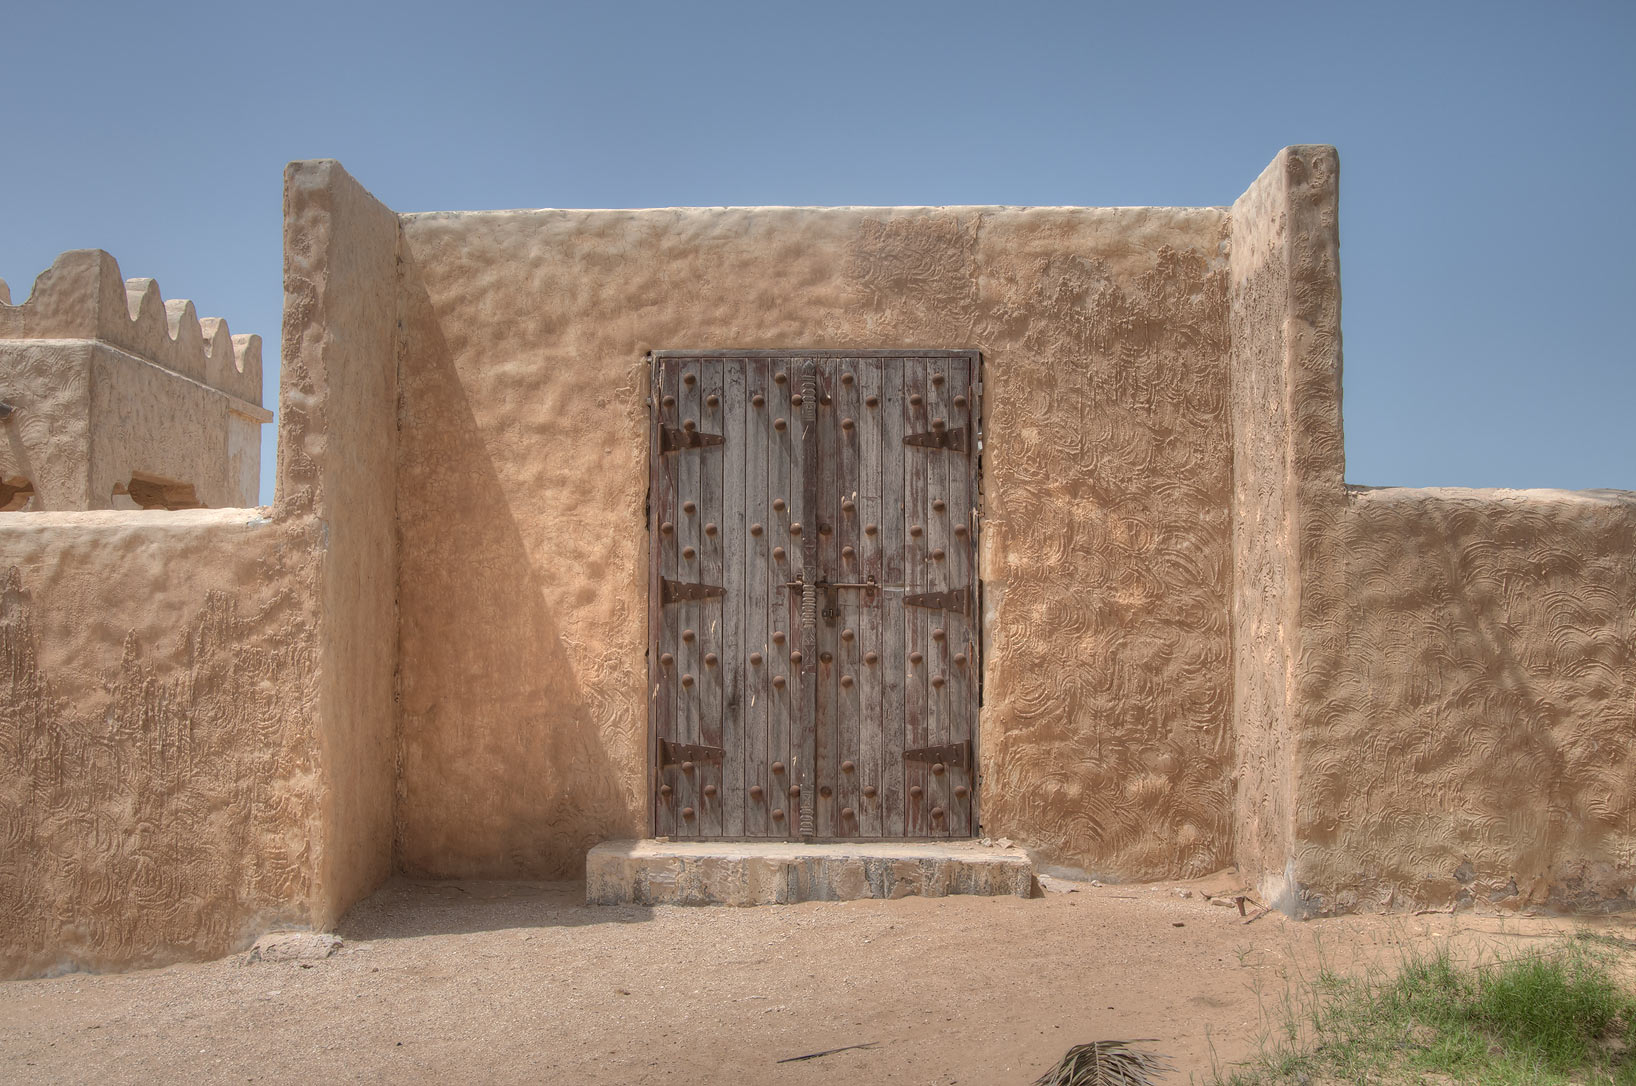 Wooden gate in Film City built for a television...area, north from Zekreet. Qatar